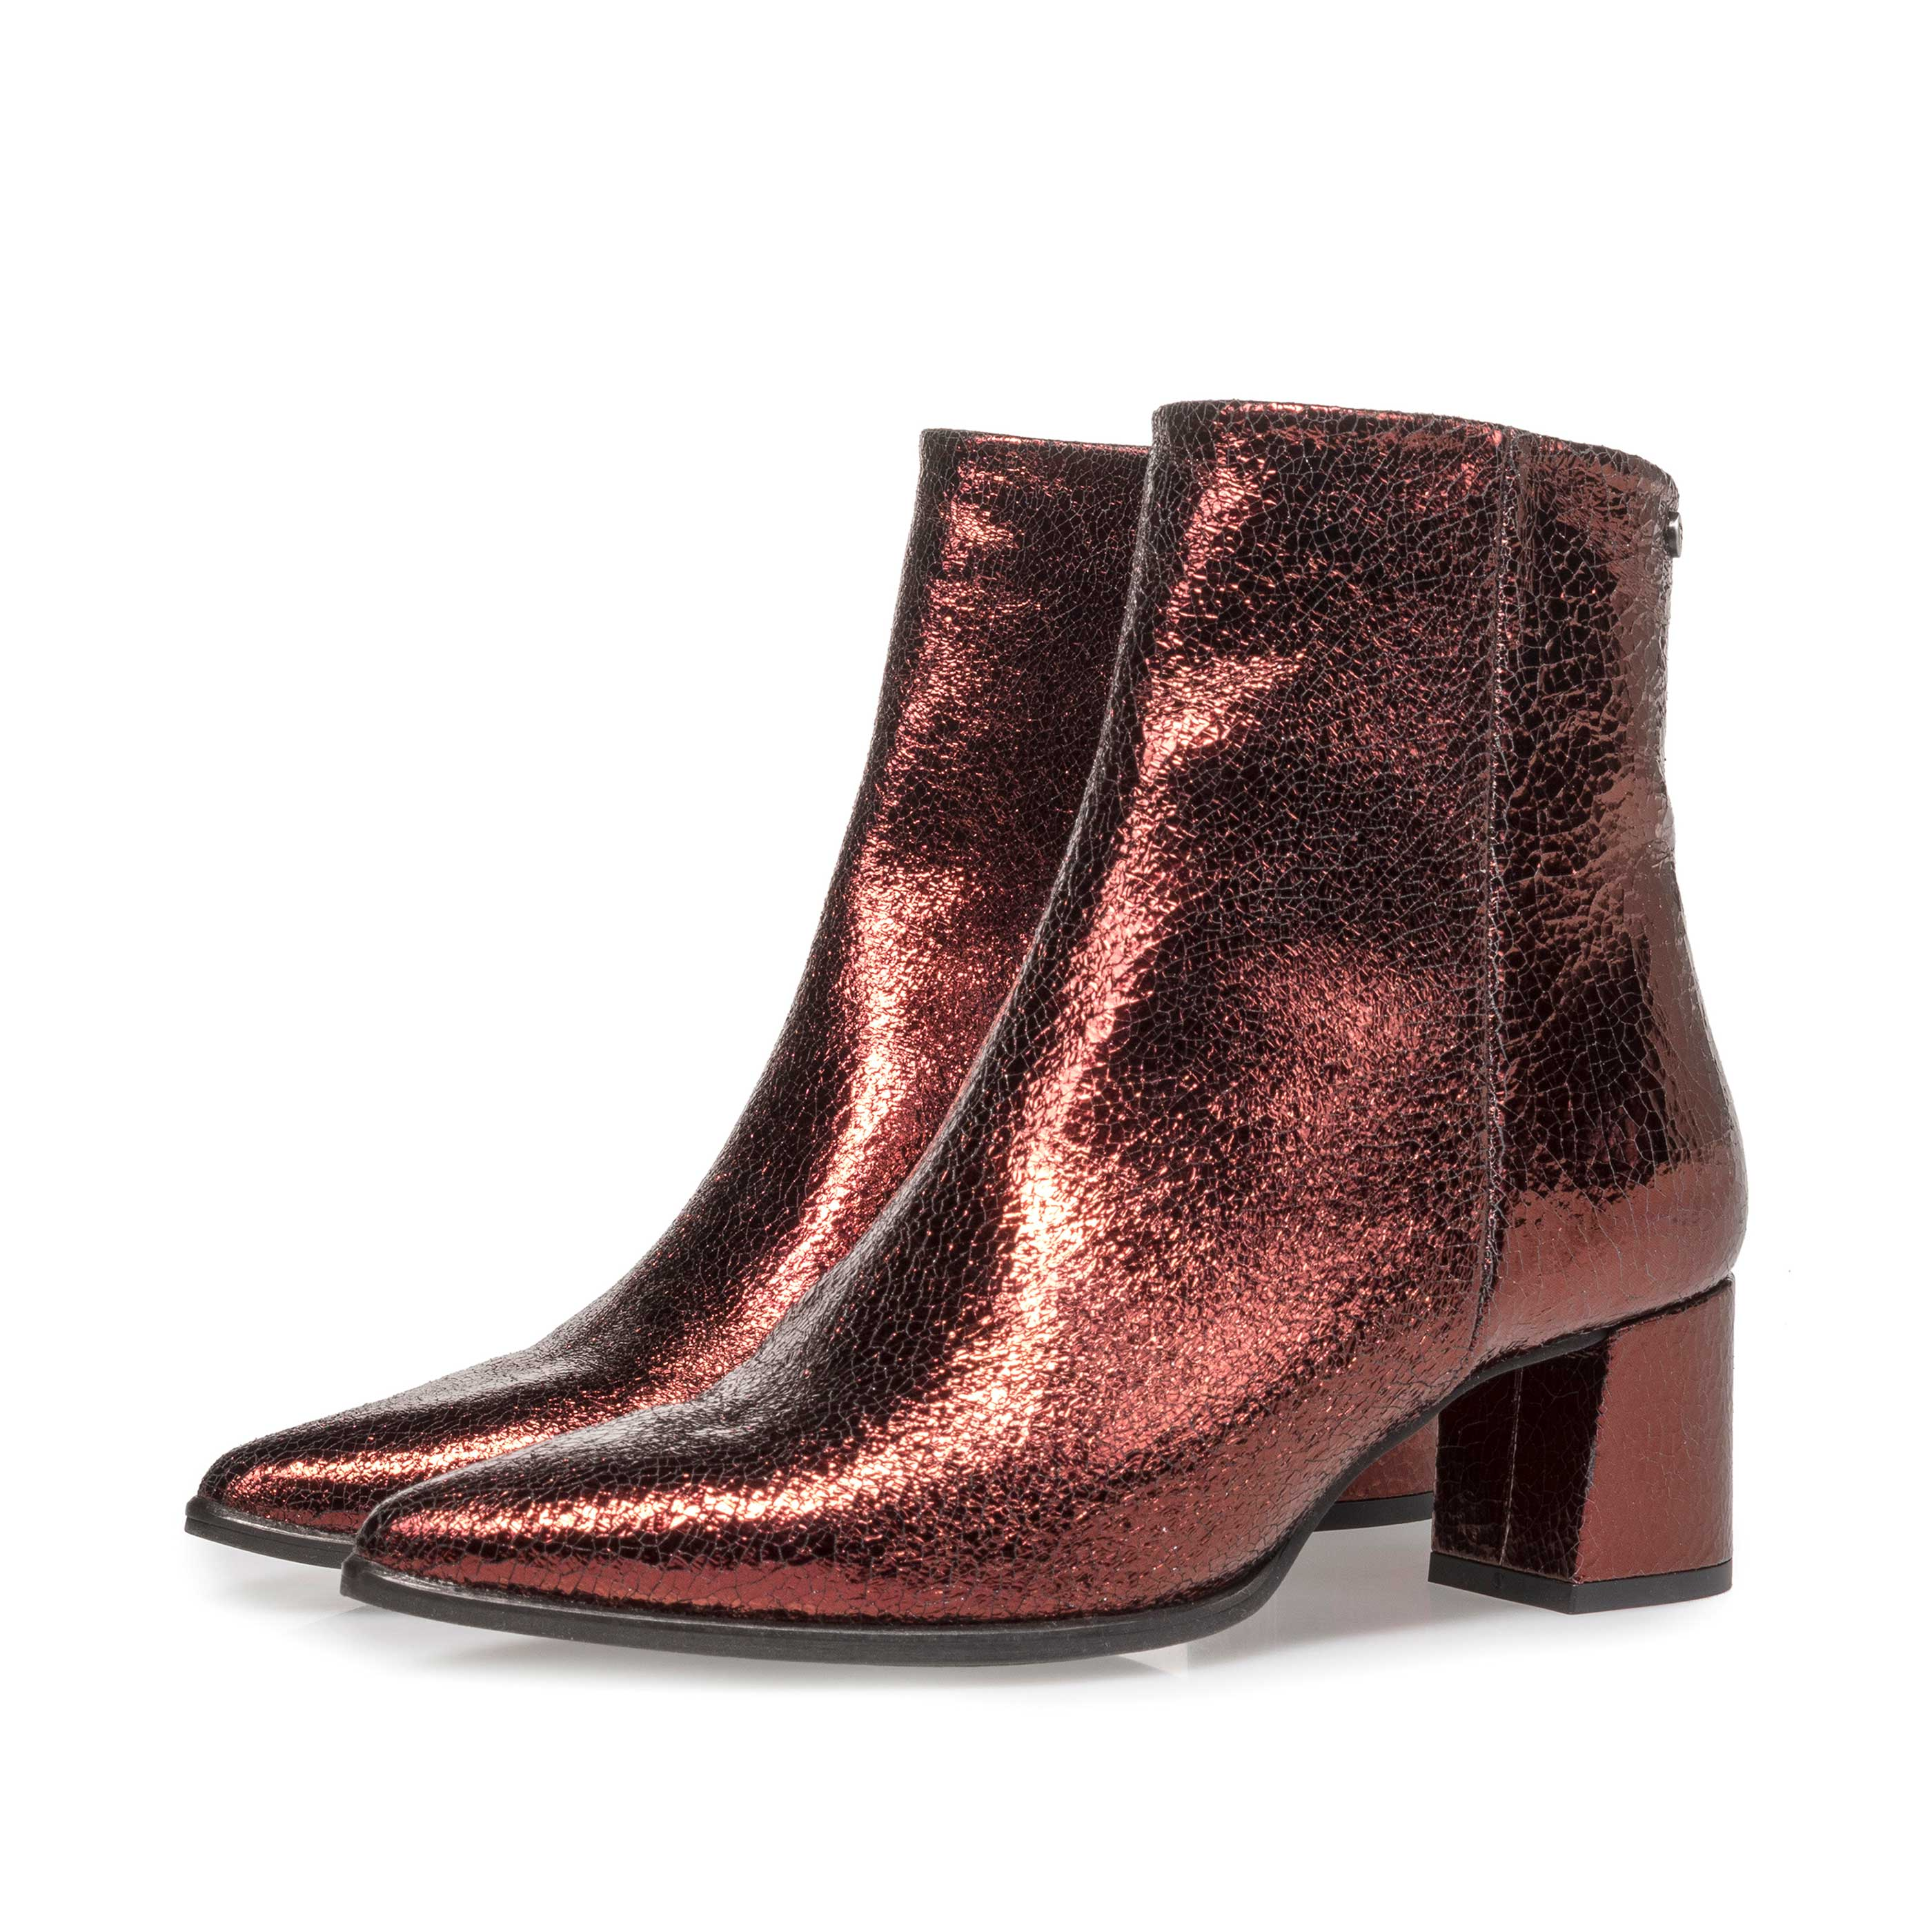 85623/07 - Burgundy red leather ankle boots with metallic print